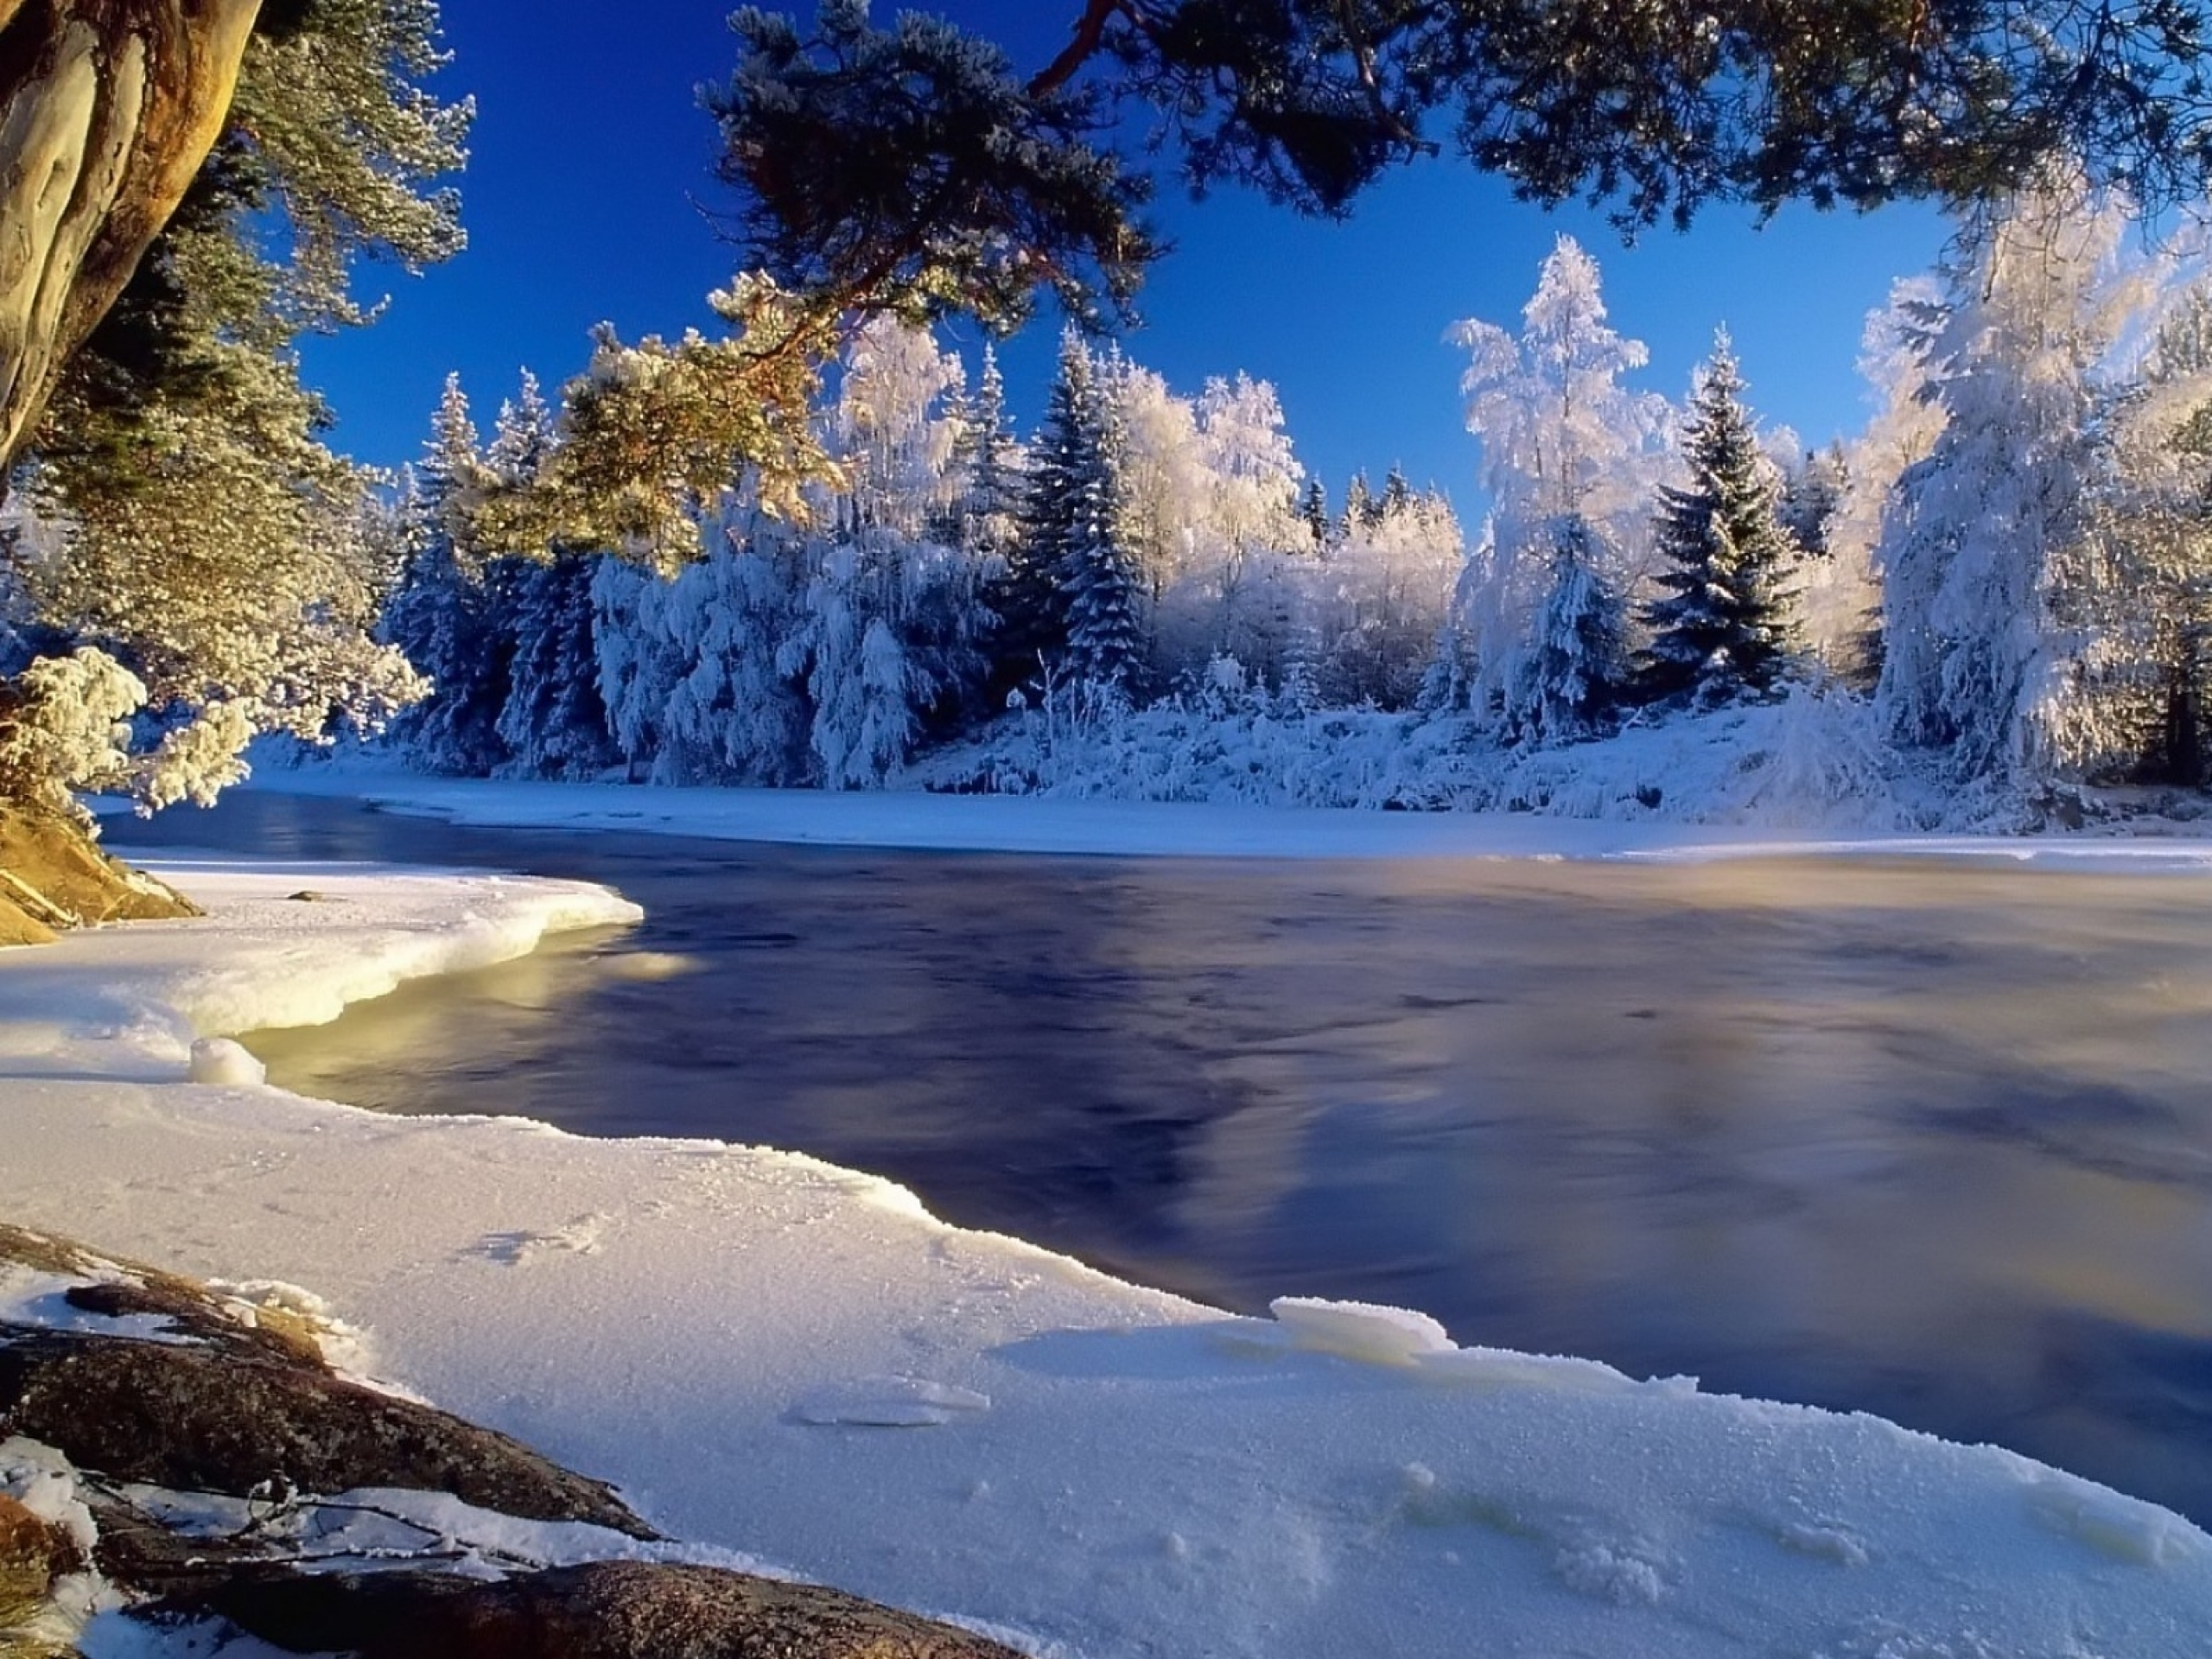 Frozen River Winter Forest Snow Nature Rivers Trees Forests ...